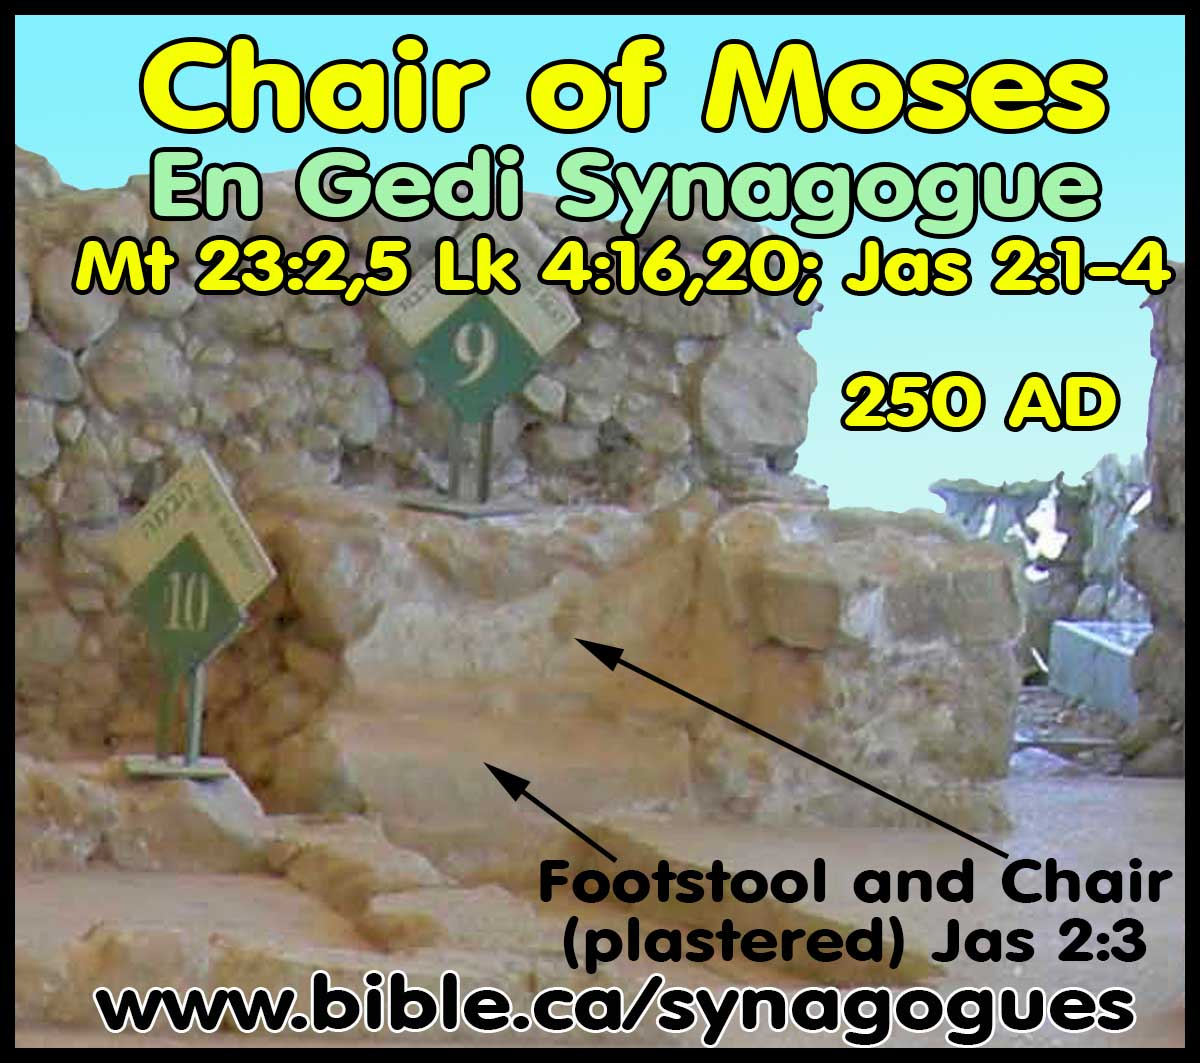 Synagogue Moses Seat Metaphor Of Pride Mt 23 2 3 Jas 2 1 4